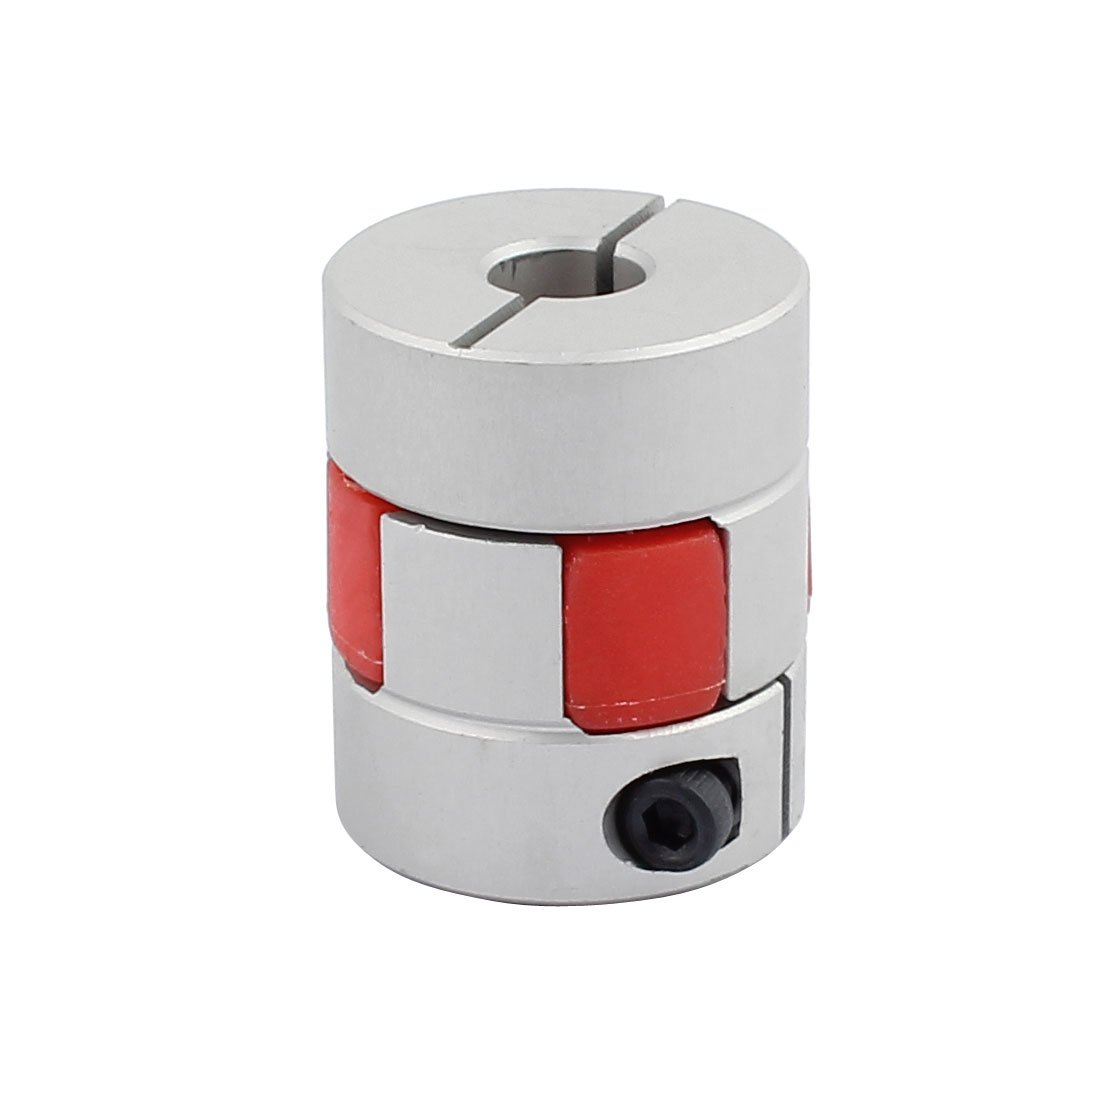 uxcell 5mm to 8mm Shaft Coupling 30mm Length 25mm Diameter Motor Coupler Aluminum Alloy Joint Connector for DIY Encoder